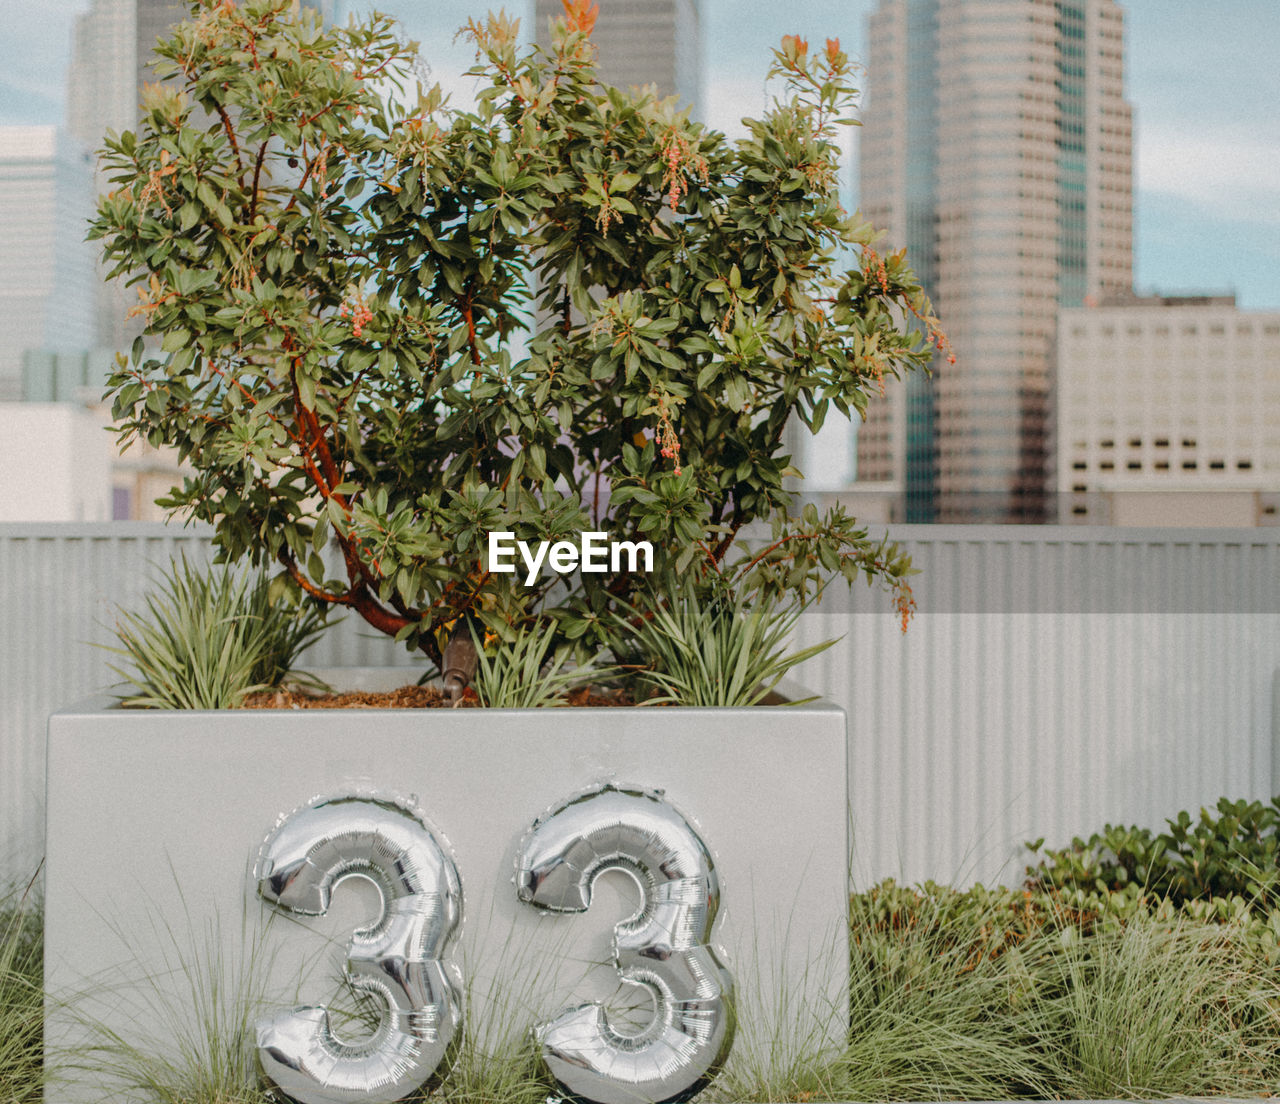 Close-up of number balloons by plant against buildings